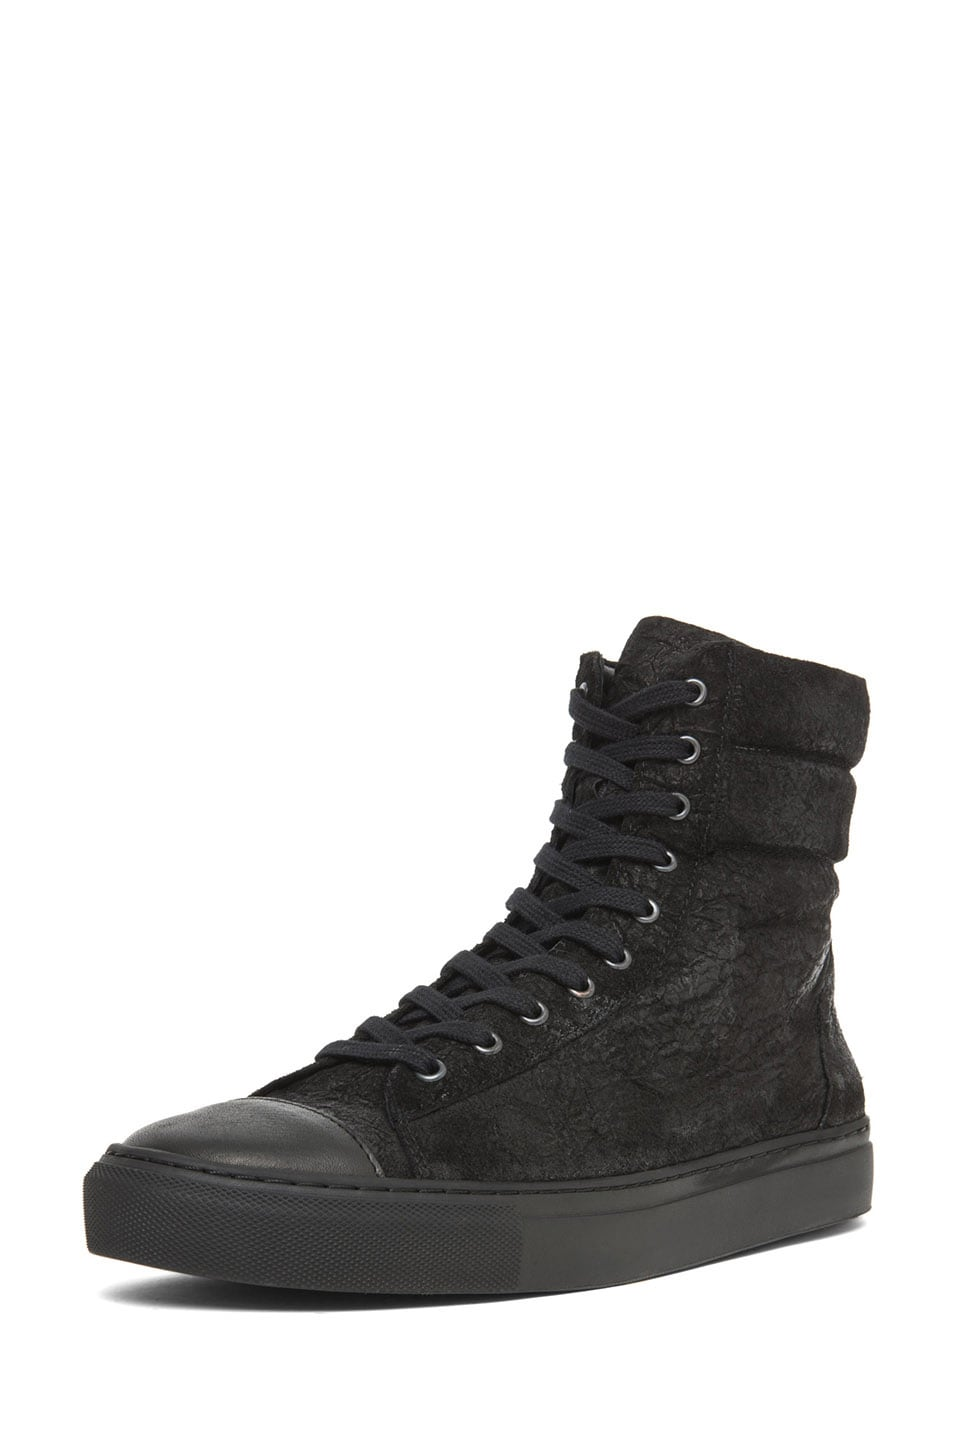 Image 2 of SILENT DAMIR DOMA Satur Leather Sneaker in Black